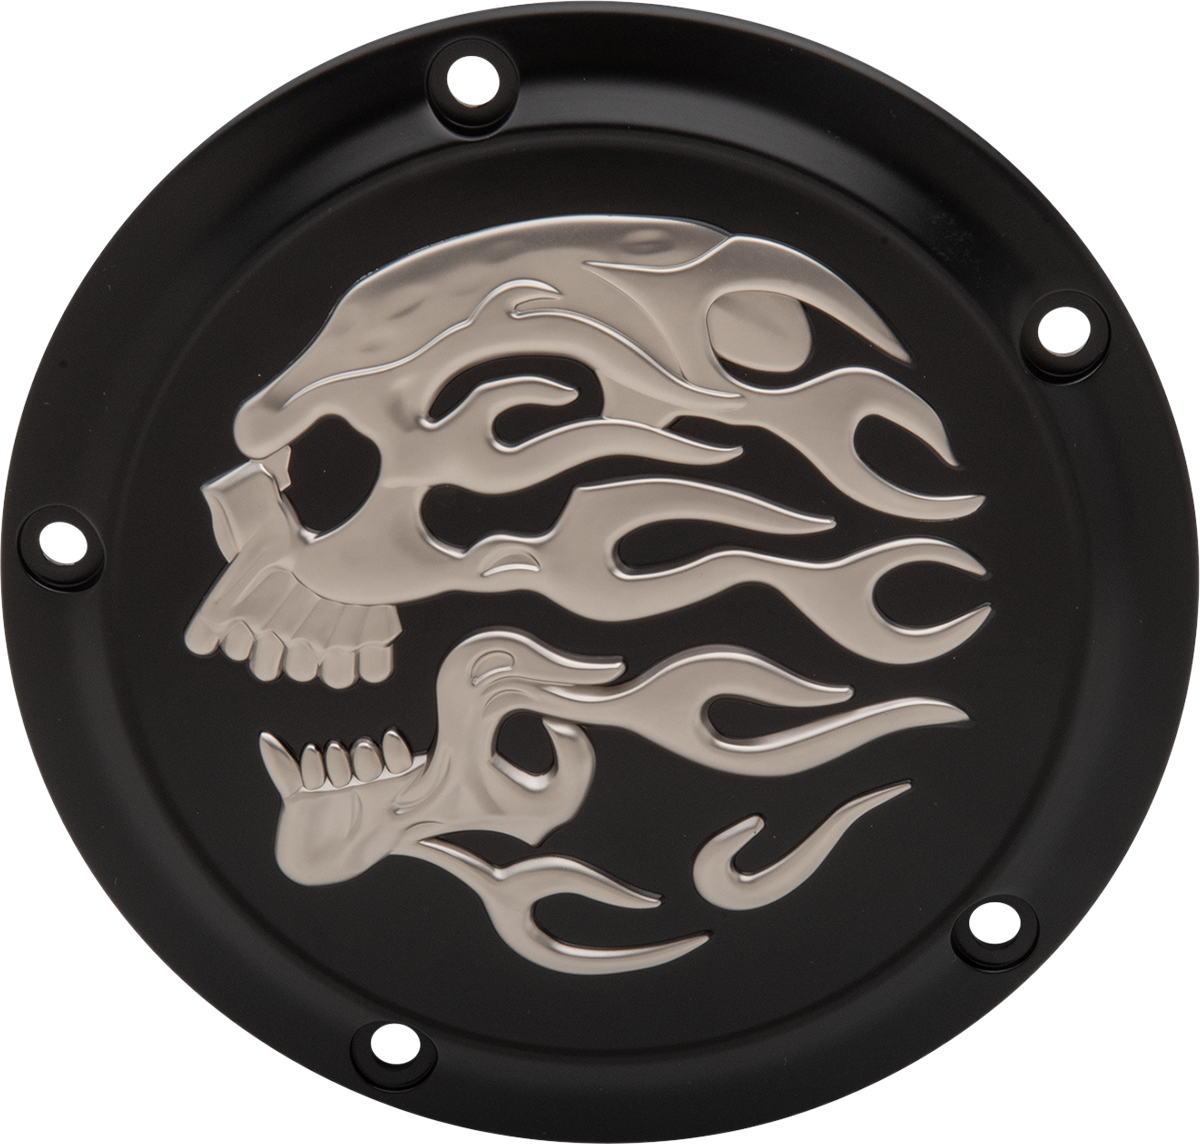 Drag Specialties Flame Skull Derby Cover 00-17 Harley Dyna Touring Softail FLHX